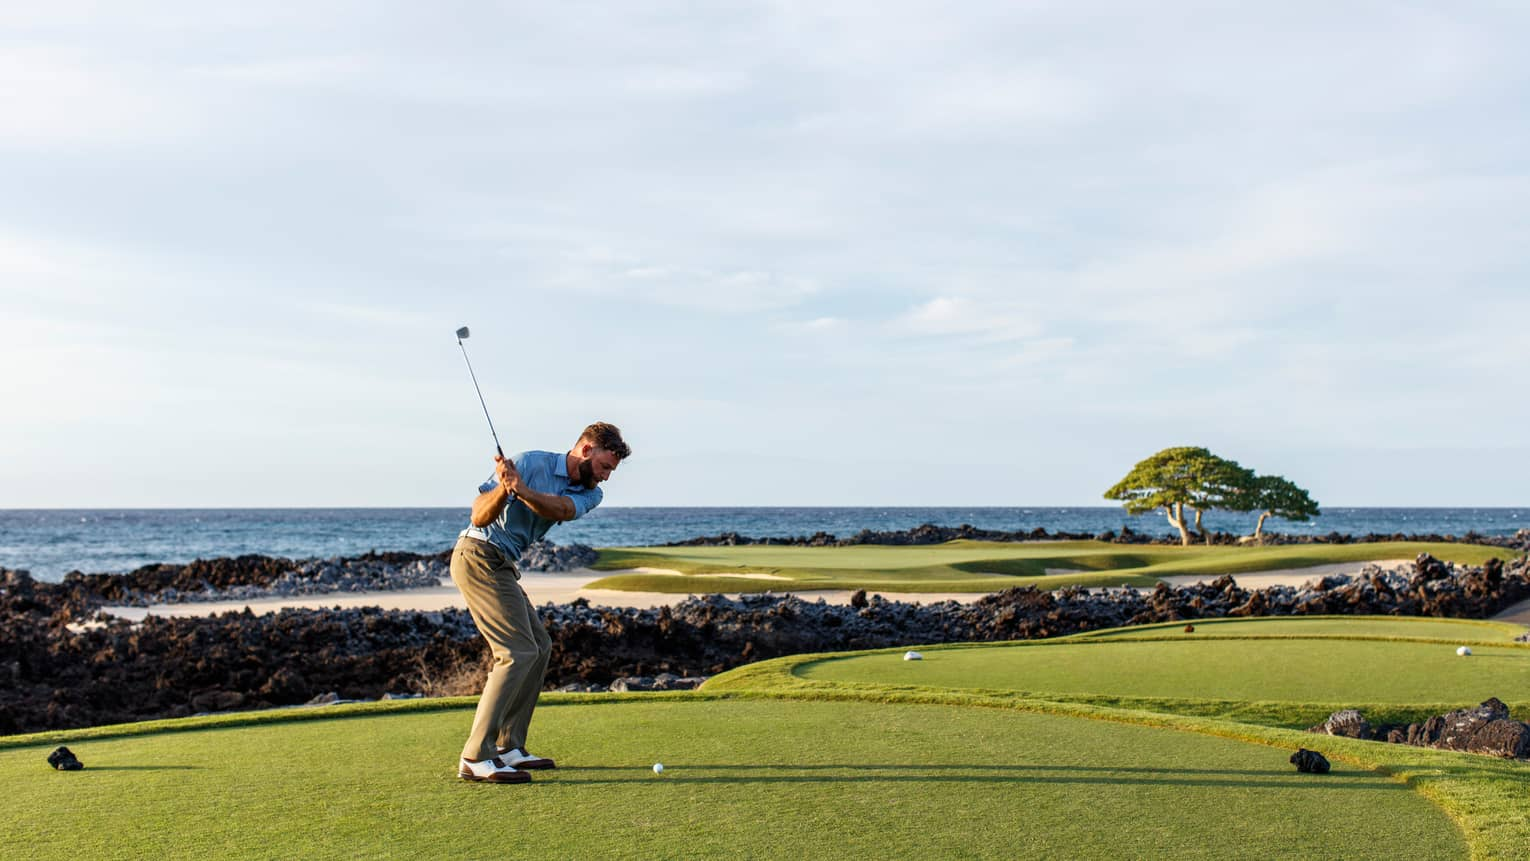 Man swings golf club on Hualalai Golf Course green by ocean